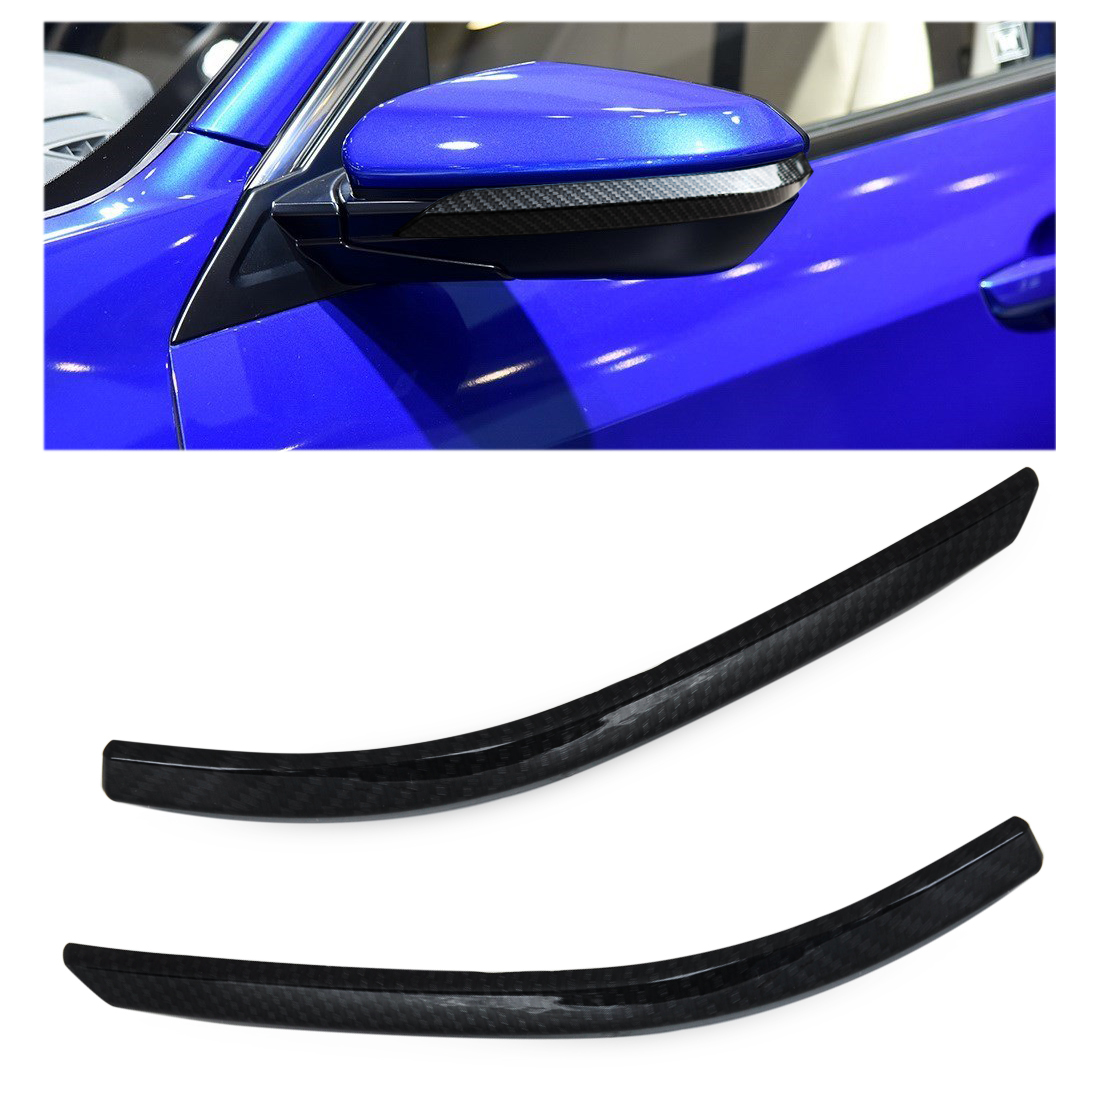 beler 2x New Black ABS Plastic Carbon Fiber Texture Rearview Side Mirror Strip Cover Trim For Honda Civic 2016 2017 Car Styling replacement car styling carbon fiber abs rear side door mirror cover for bmw 5 series f10 gt f07 lci 2014 523i 528i 535i